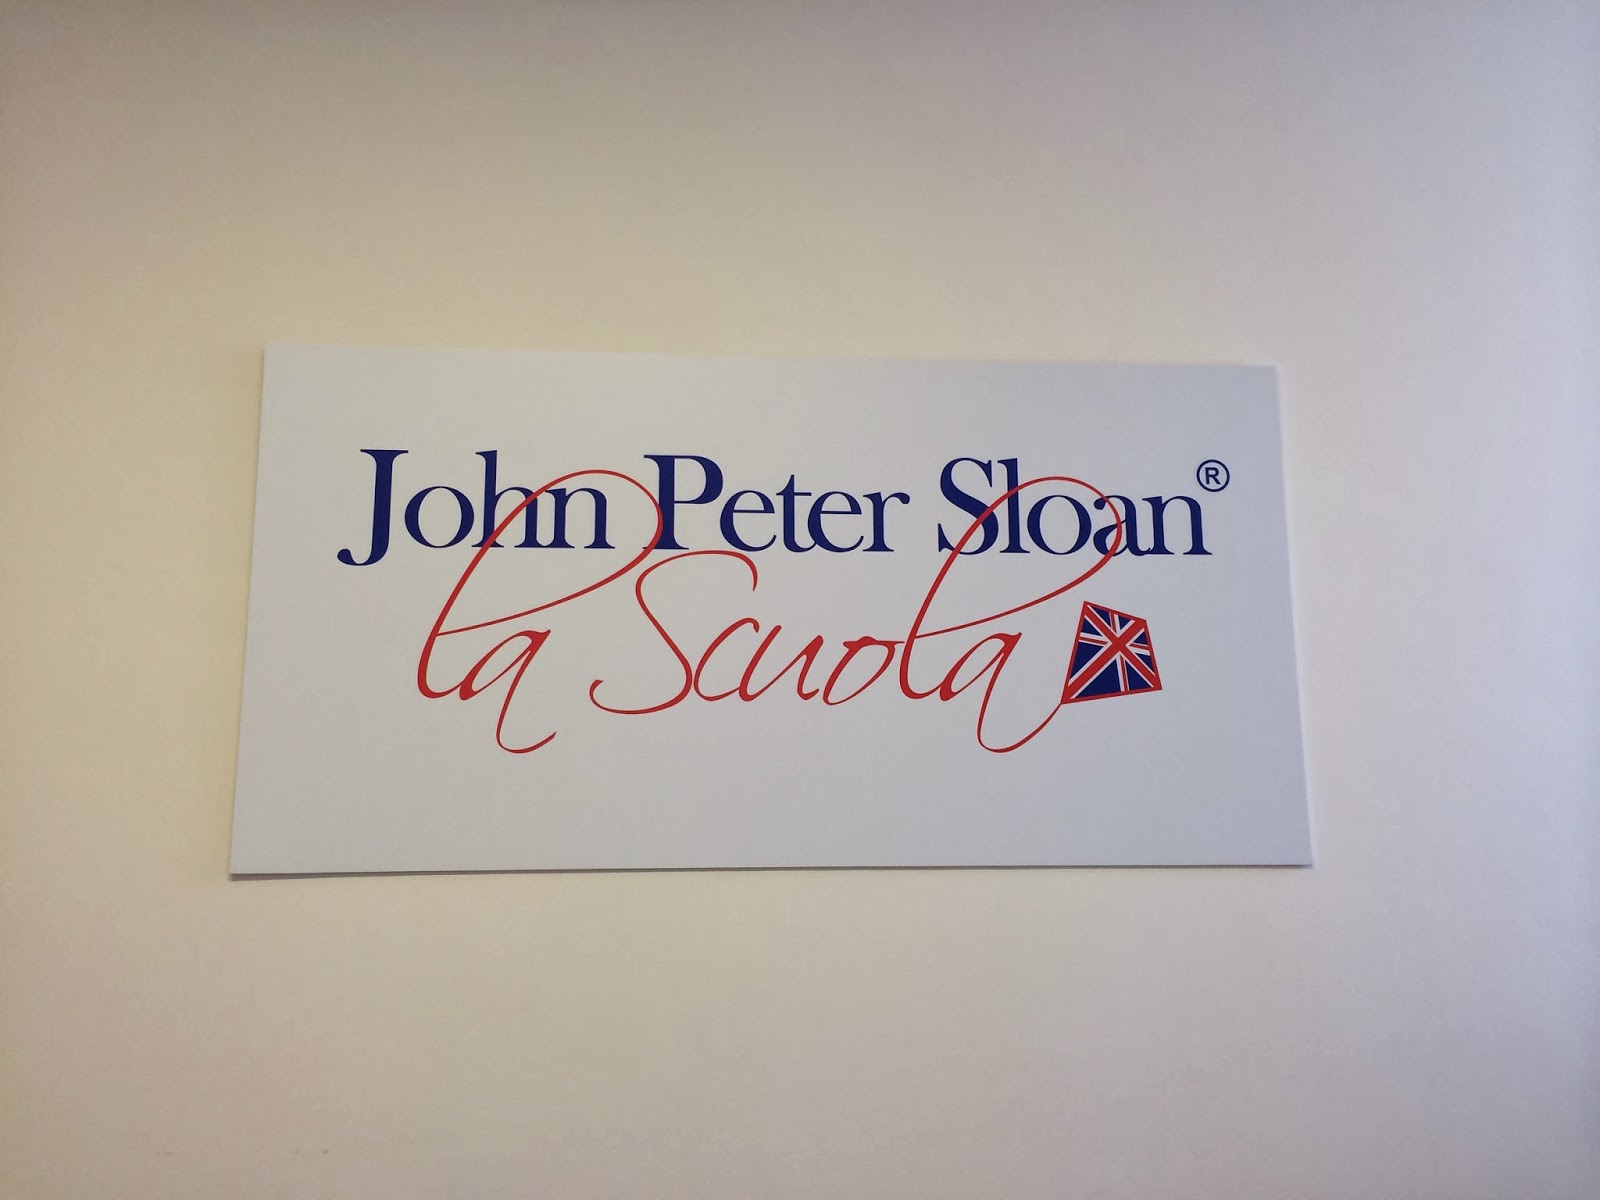 John_Peter_Sloan_La Scuola_inglese_english_lessons_english_course